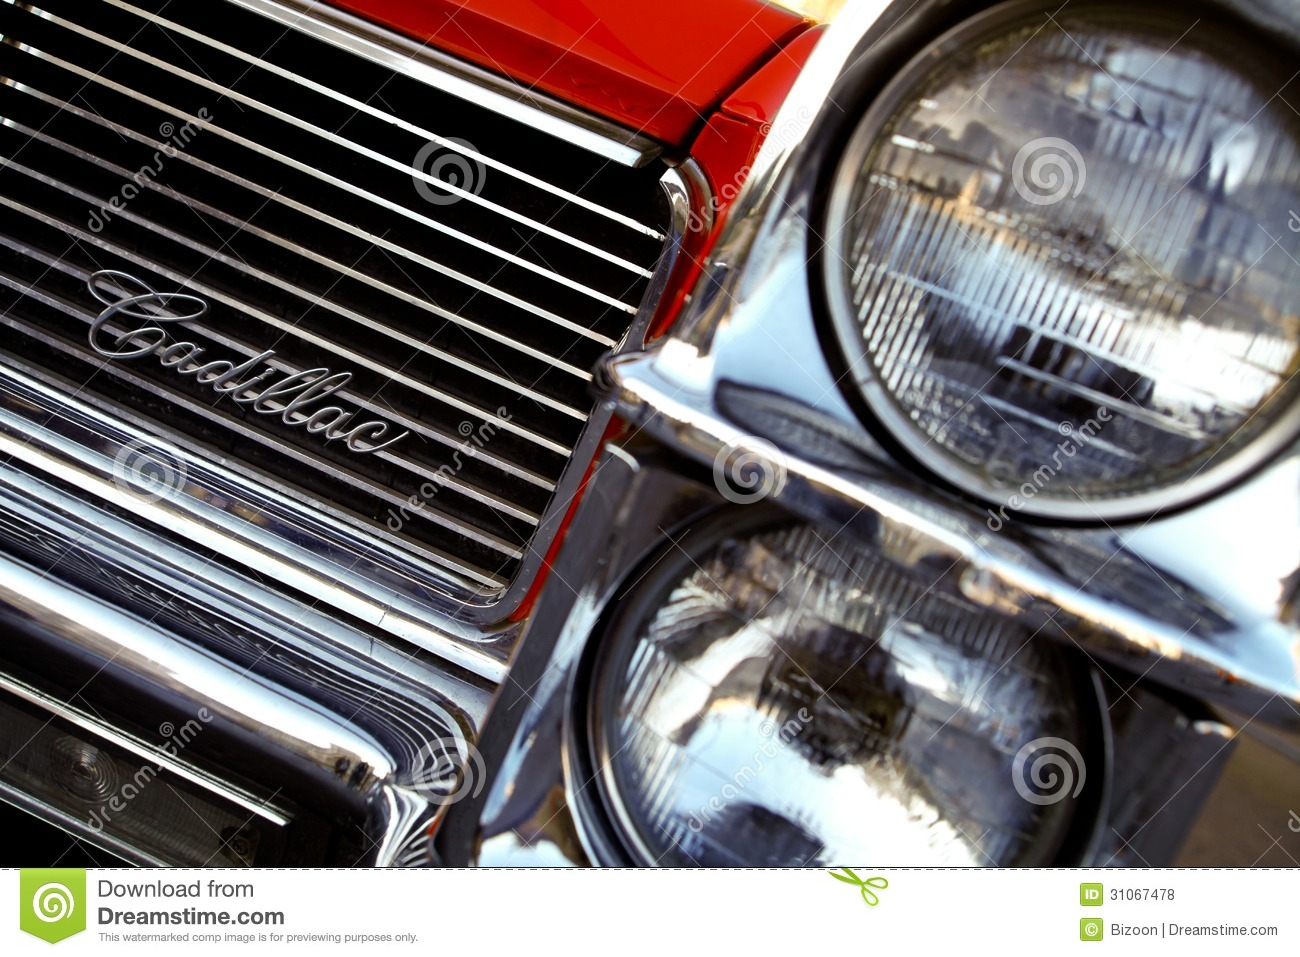 Vintage Cadillac Editorial Stock Photo Image 31067478